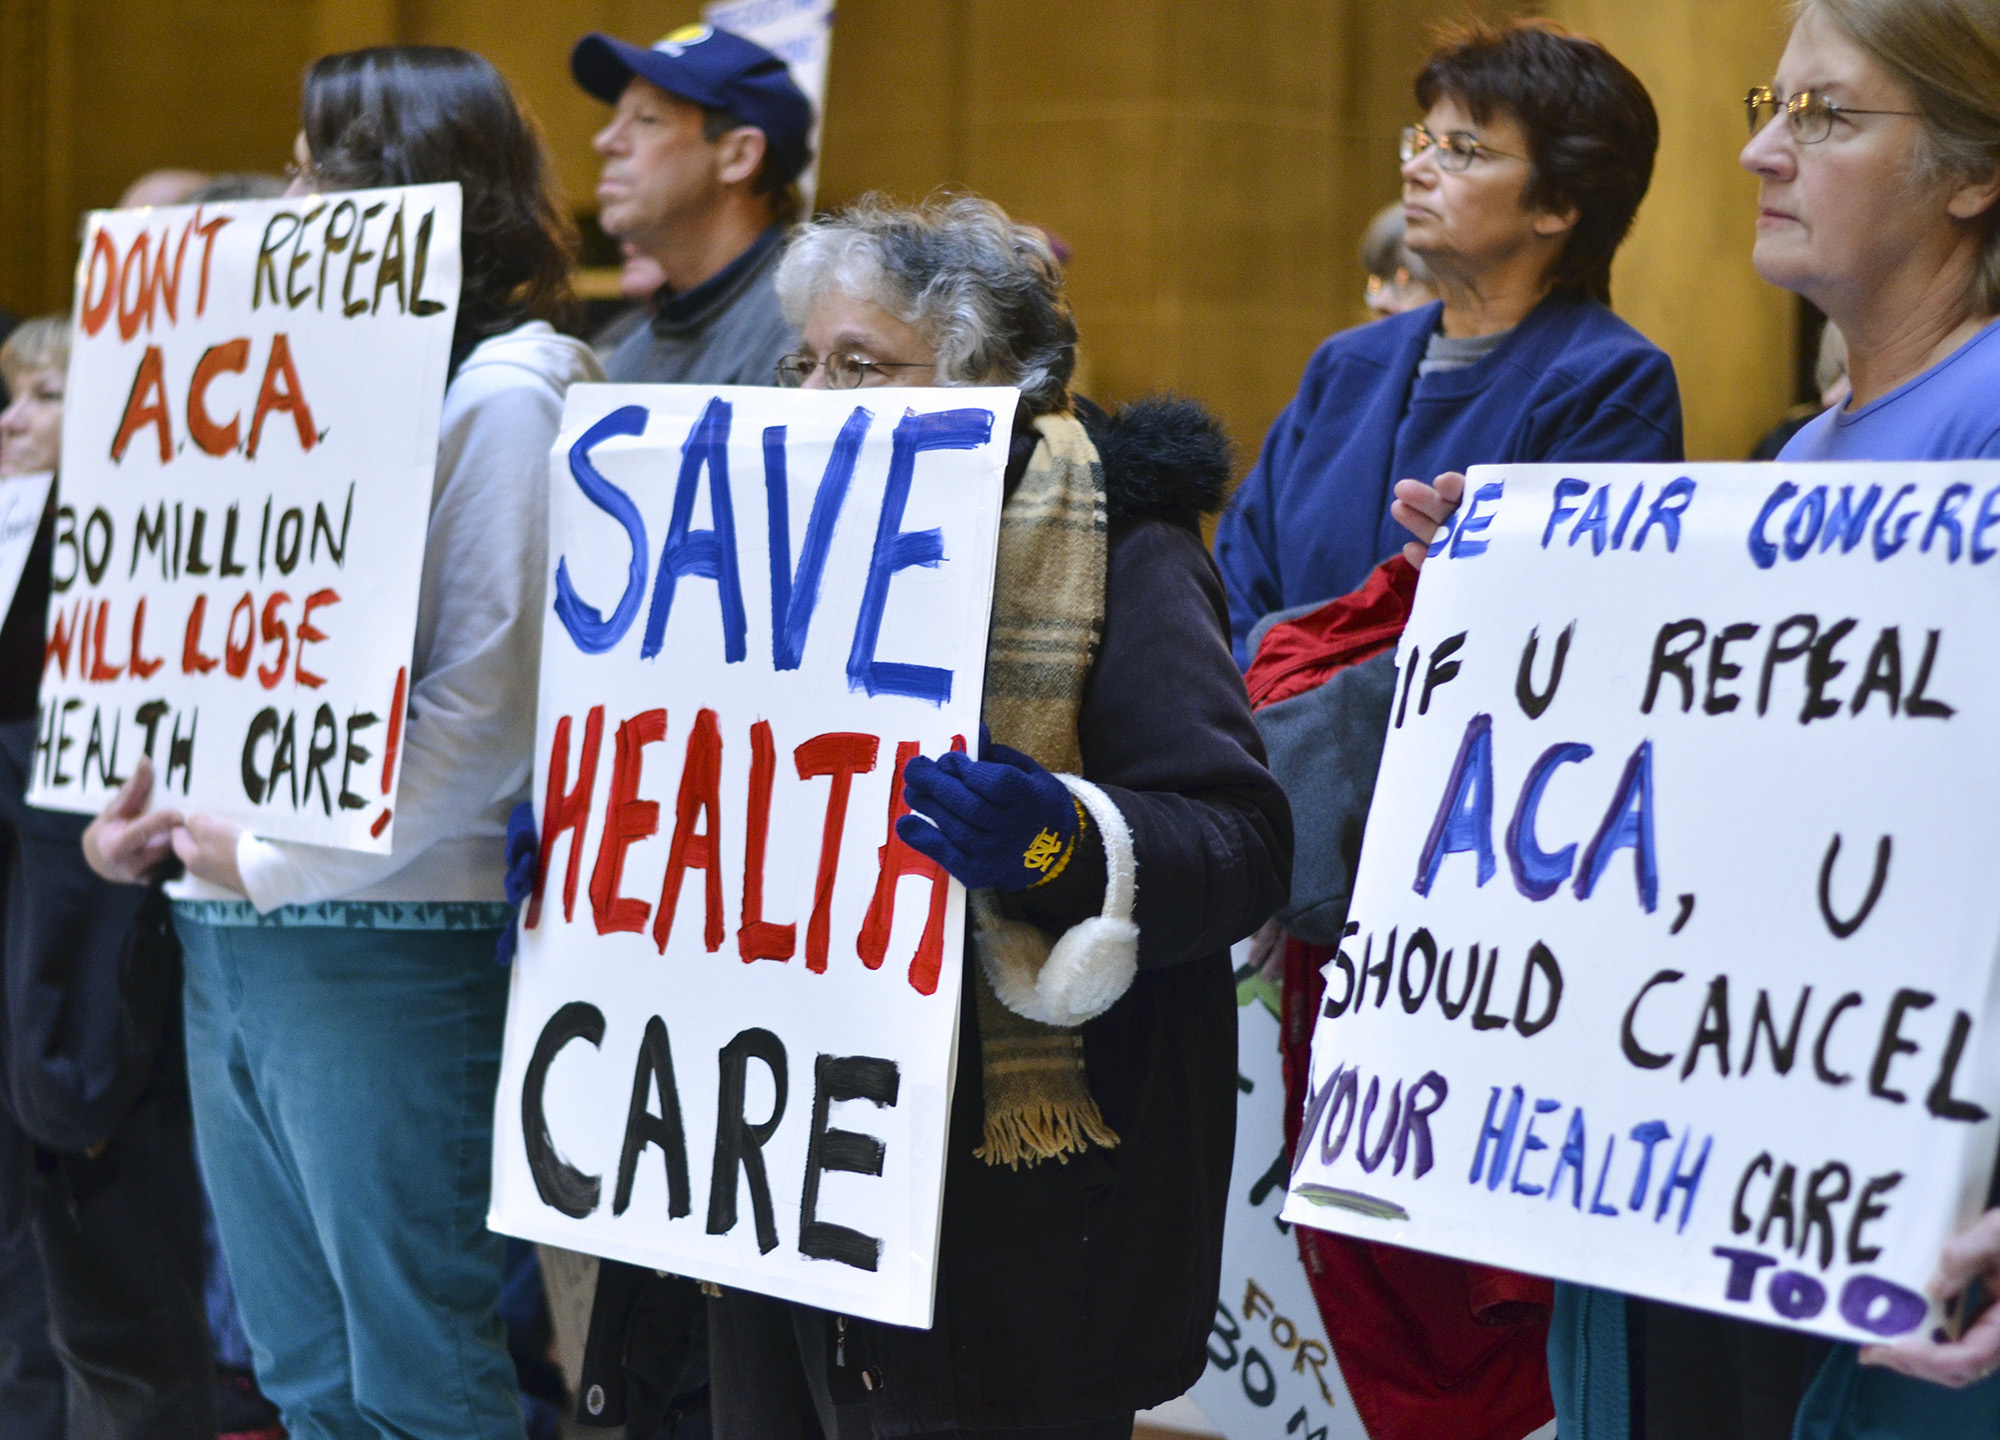 obama care One year after republicans voted to dismantle parts of obamacare and leave 23 million americans without health insurance, a new poll showed that voters in key midterm districts were less likely to vote for representatives who attacked it.